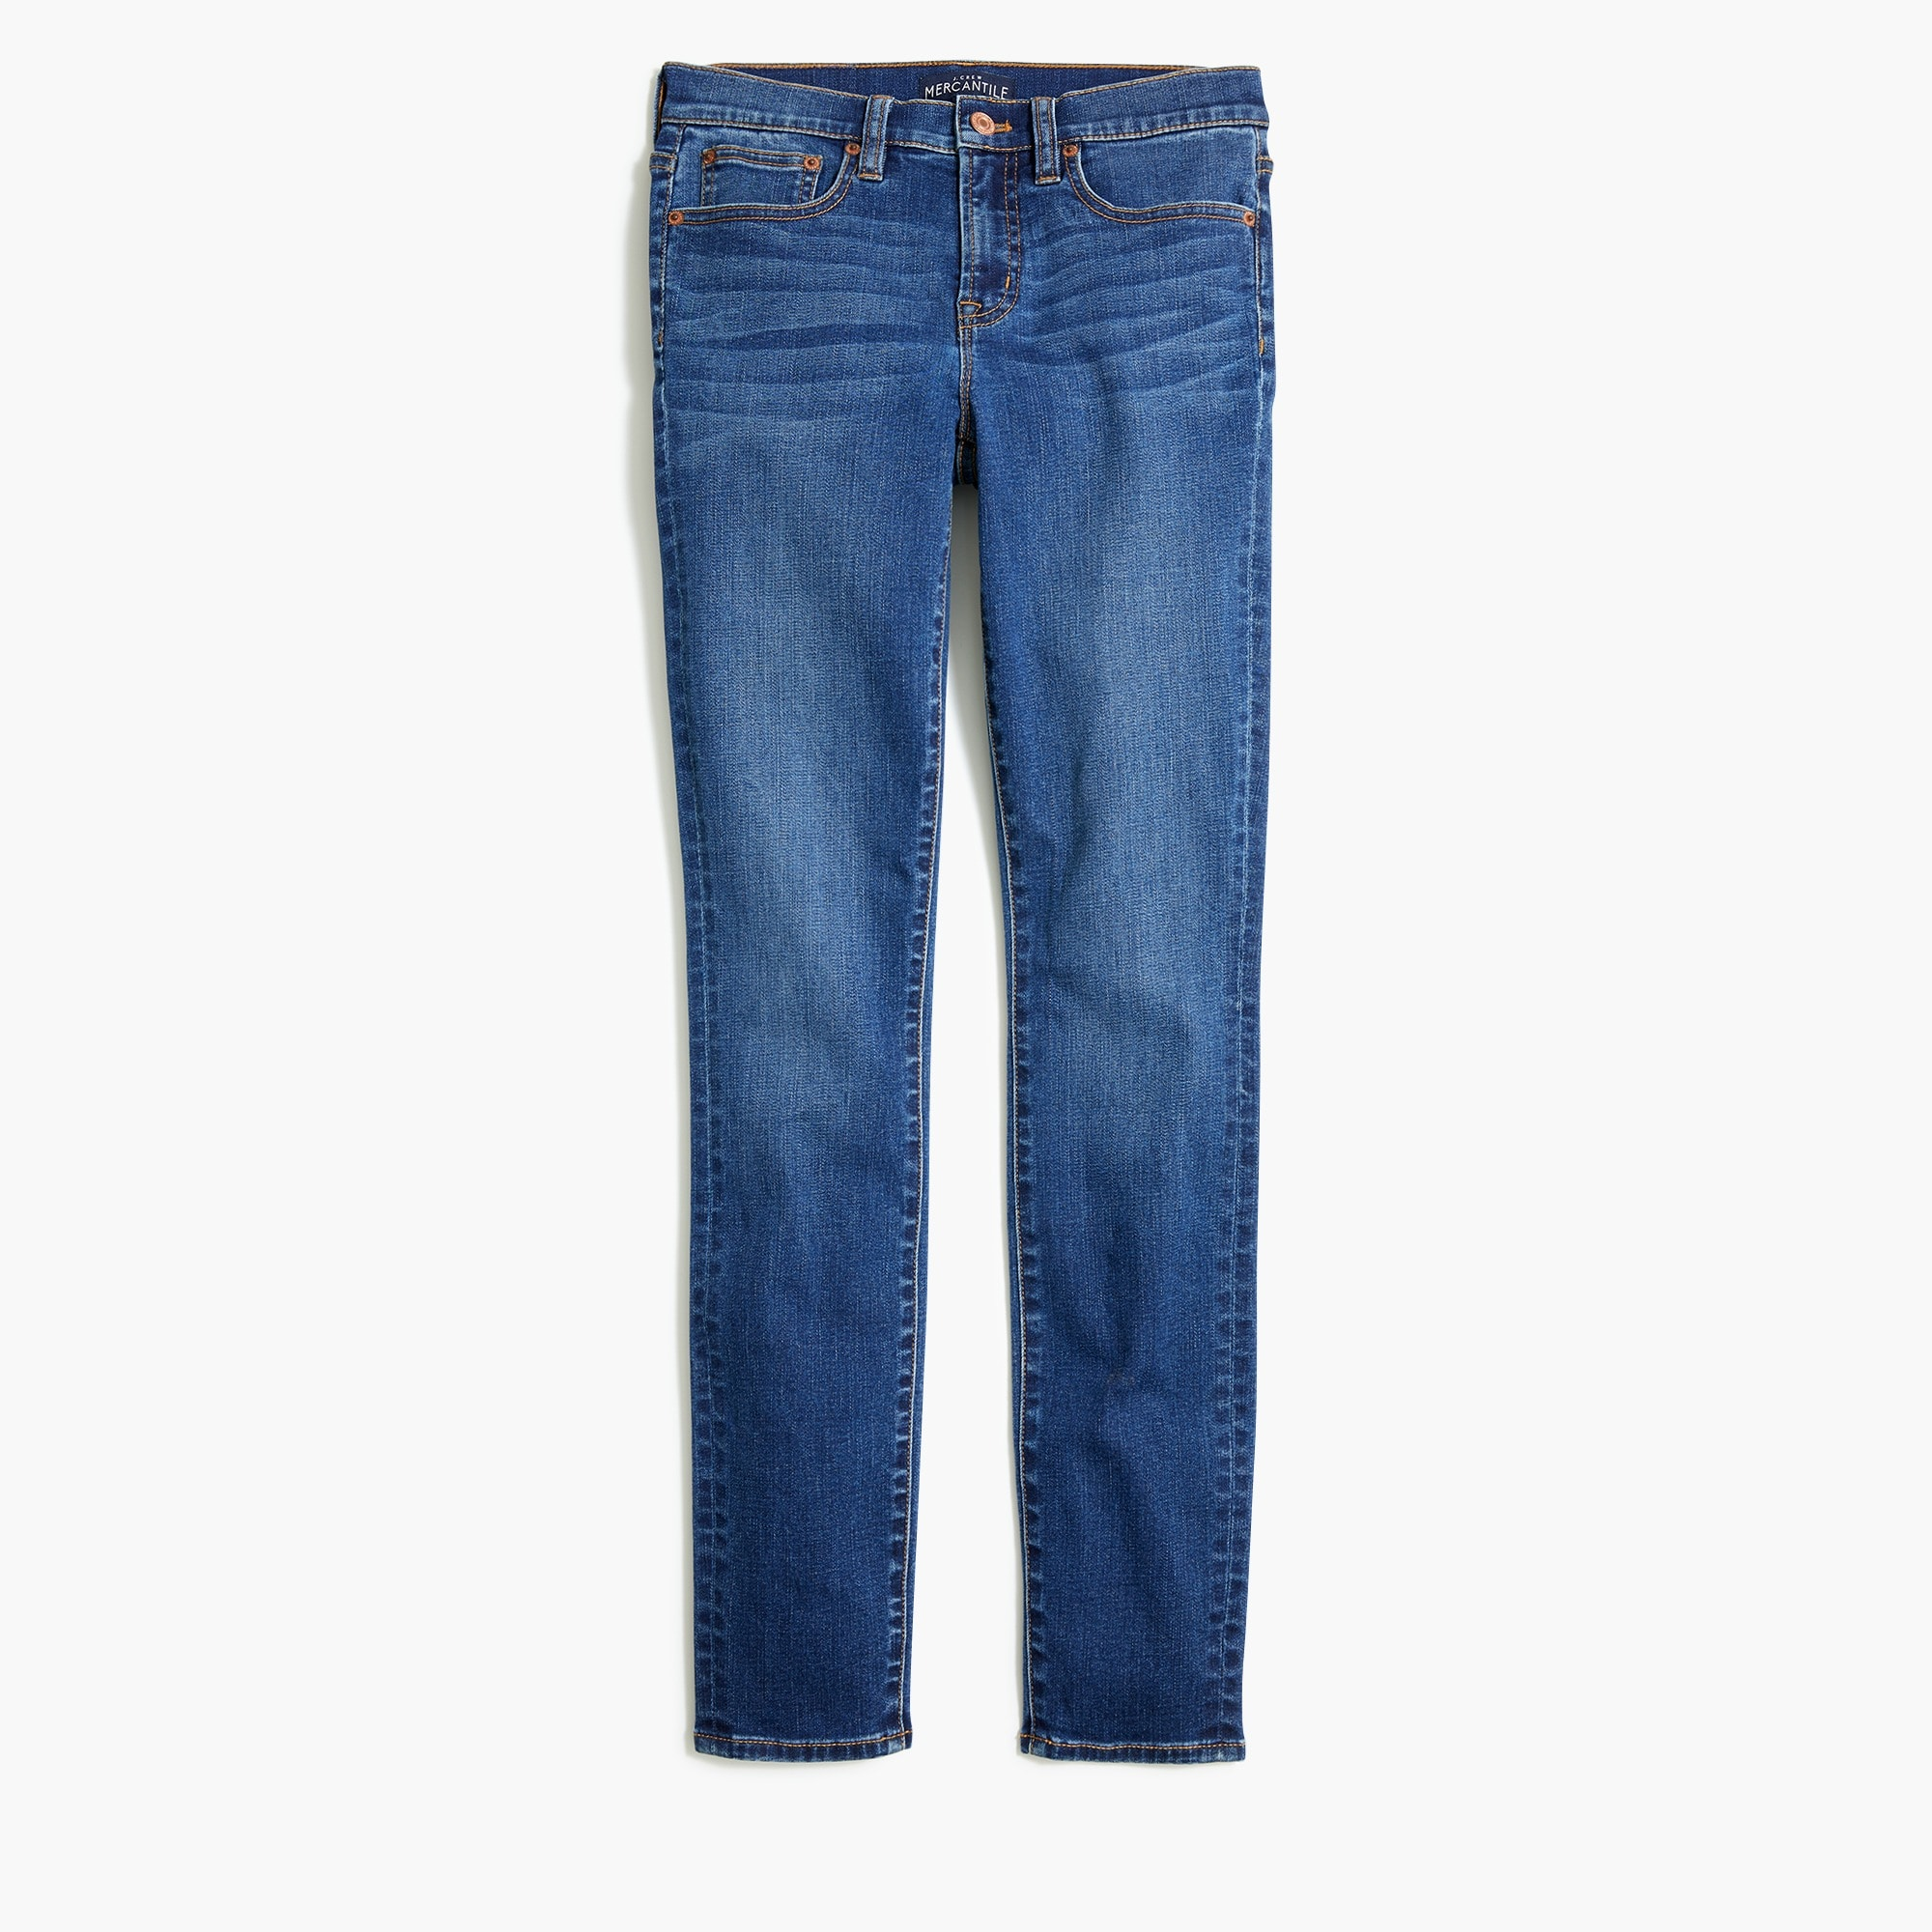 "Image 3 for 8"" midrise skinny jean in Rockaway wash with 30"" inseam"